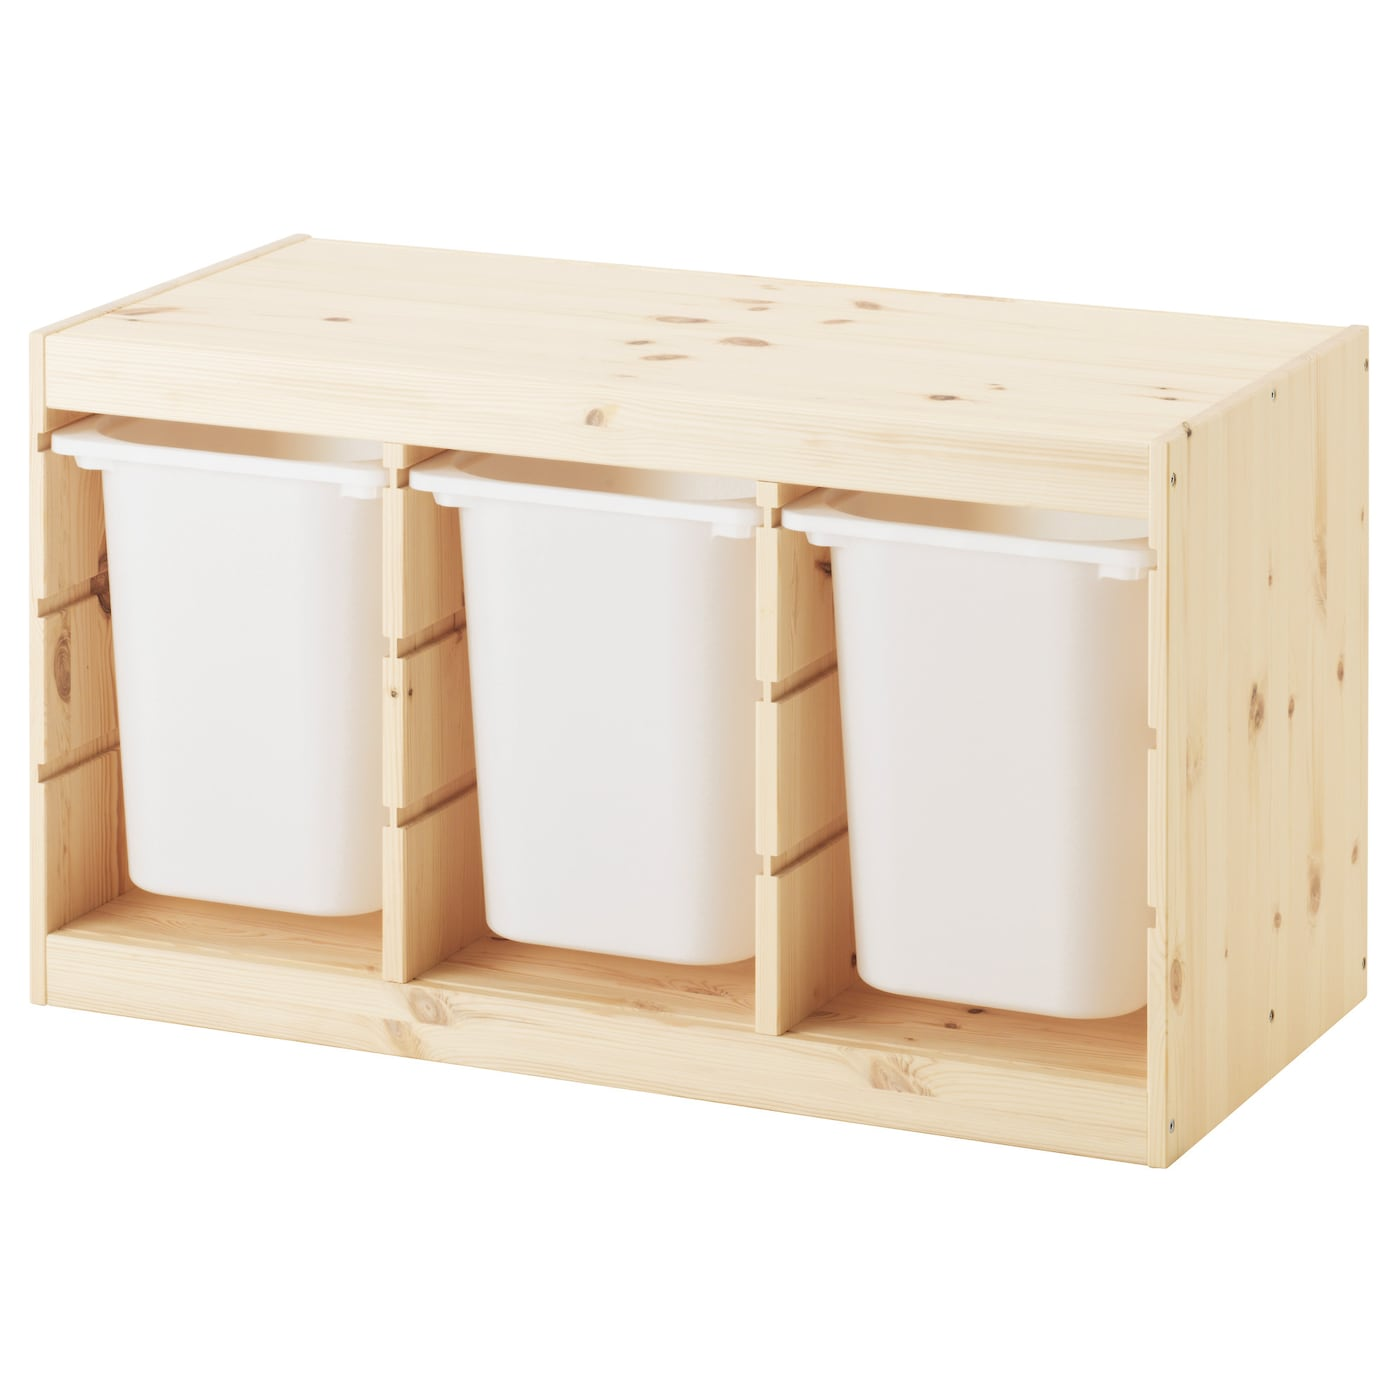 Trofast storage combination with boxes light white stained pine white 94x44x5 - Paniers de rangement ikea ...